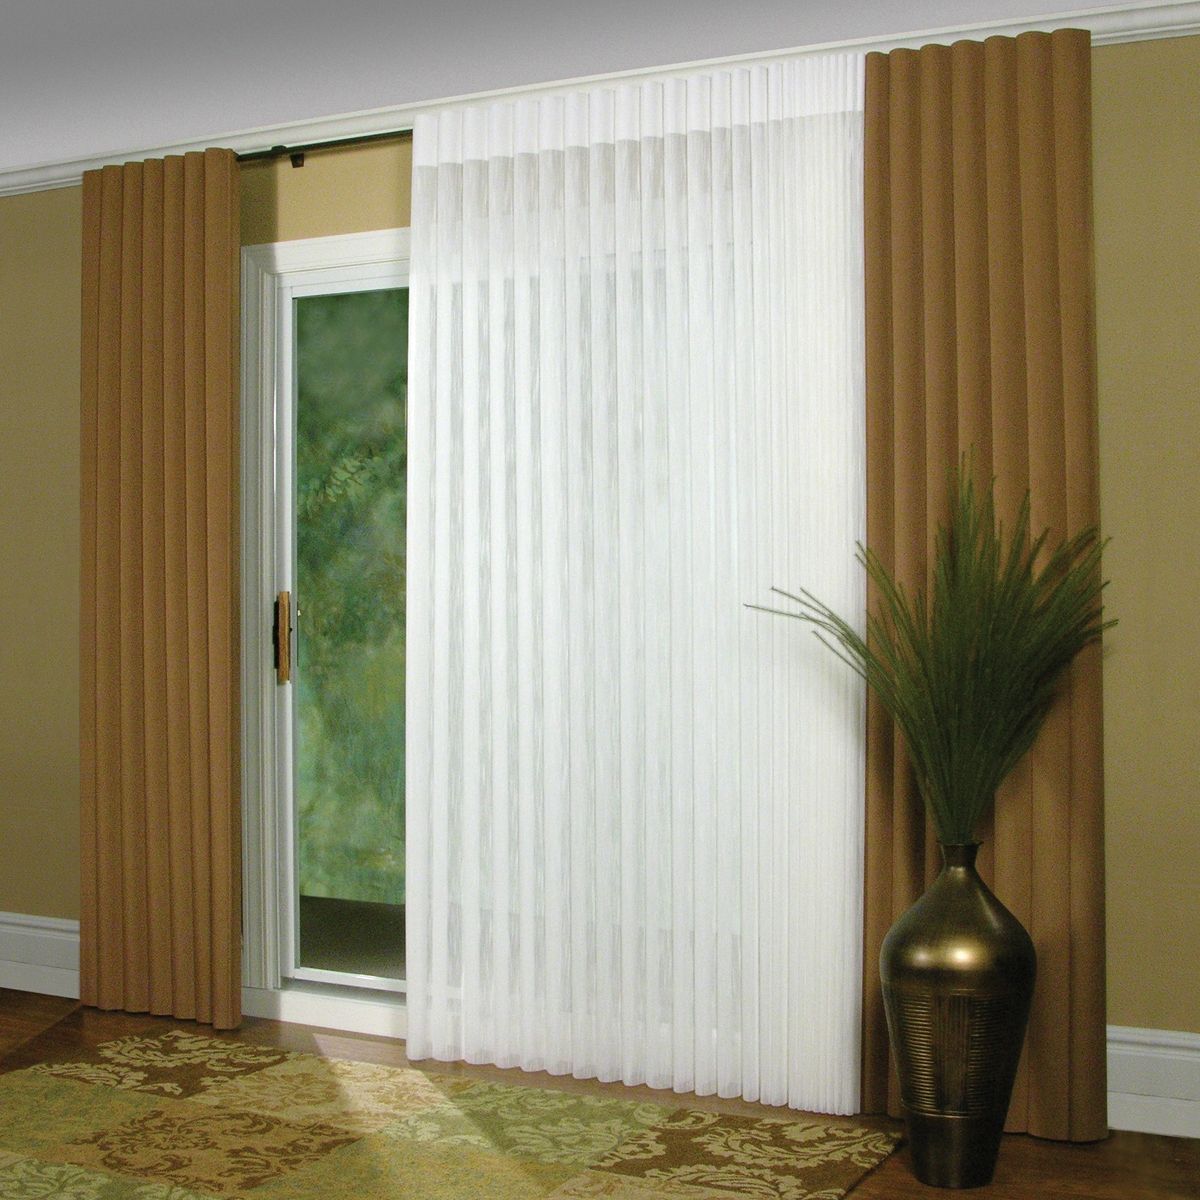 Insulated Window Coverings For Sliding Glass Doors Http